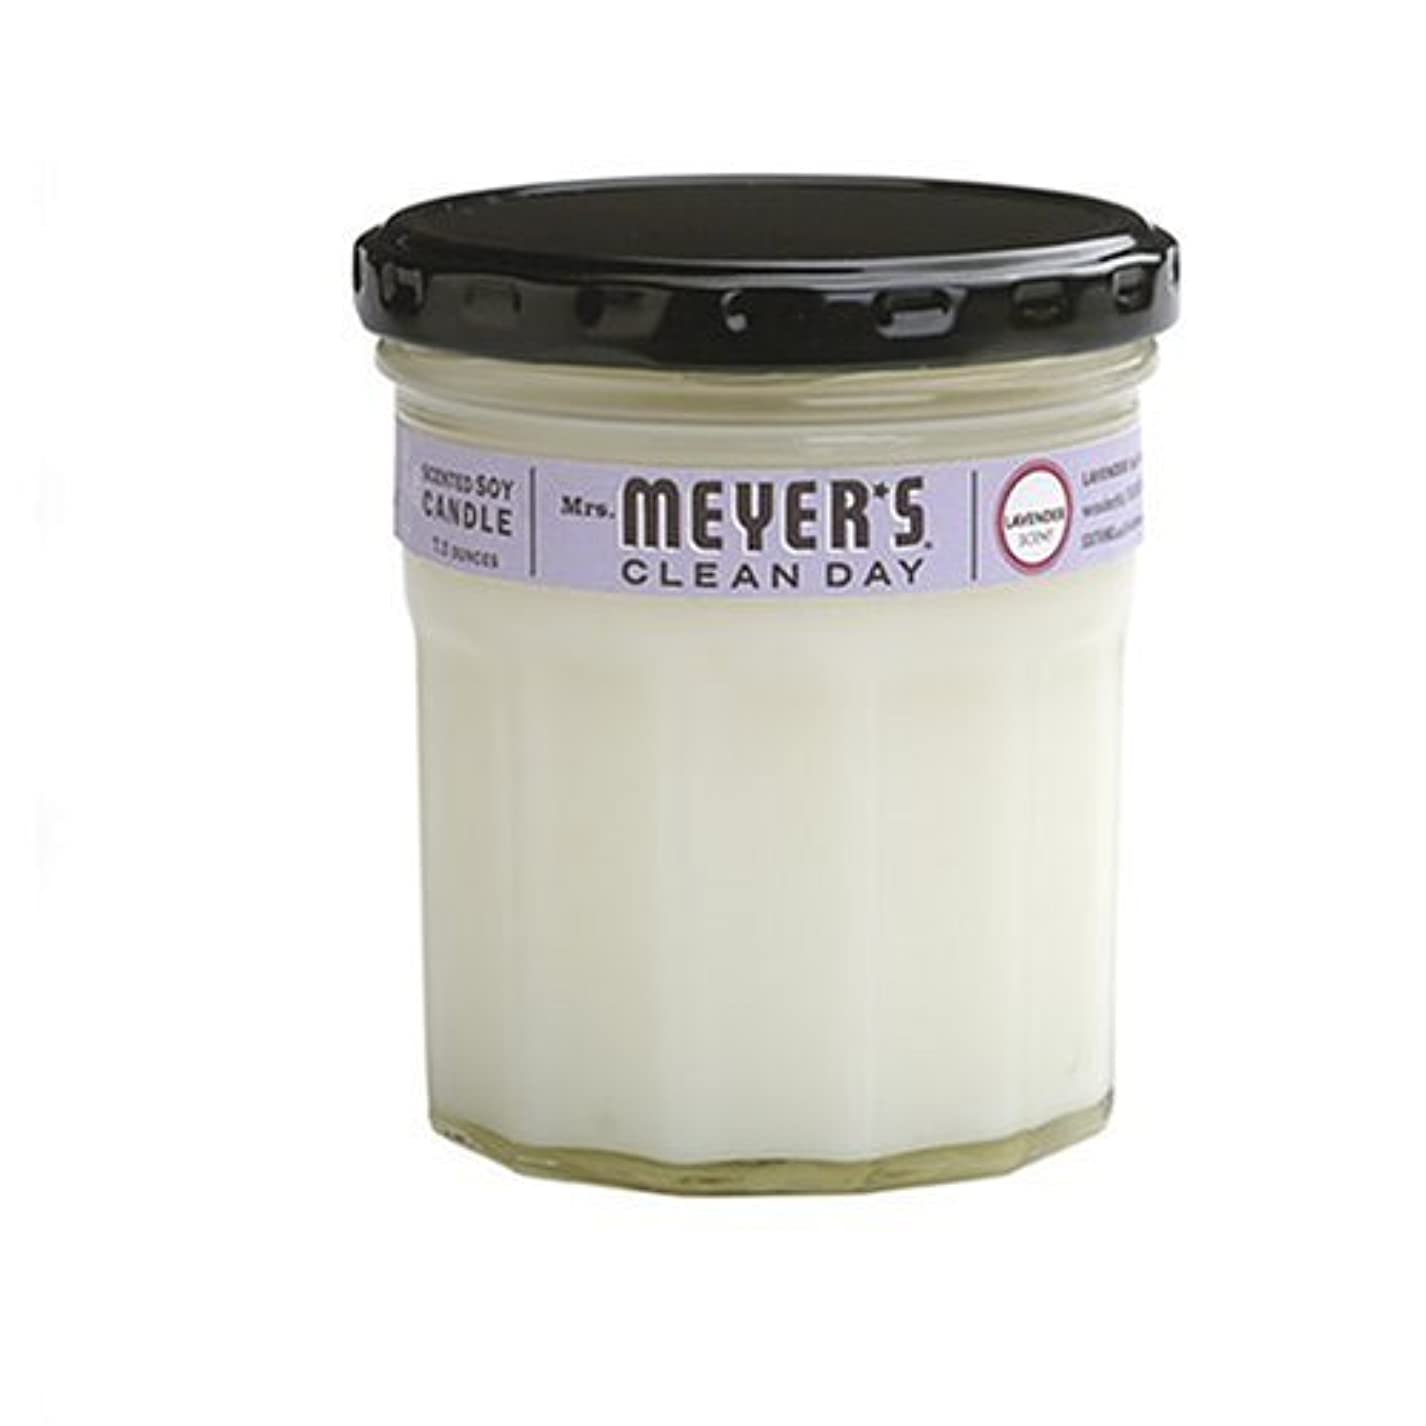 Mrs. Meyer's Clean Day Soy Candle, Lavender, 7.2 Ounce Glass Jar [並行輸入品]